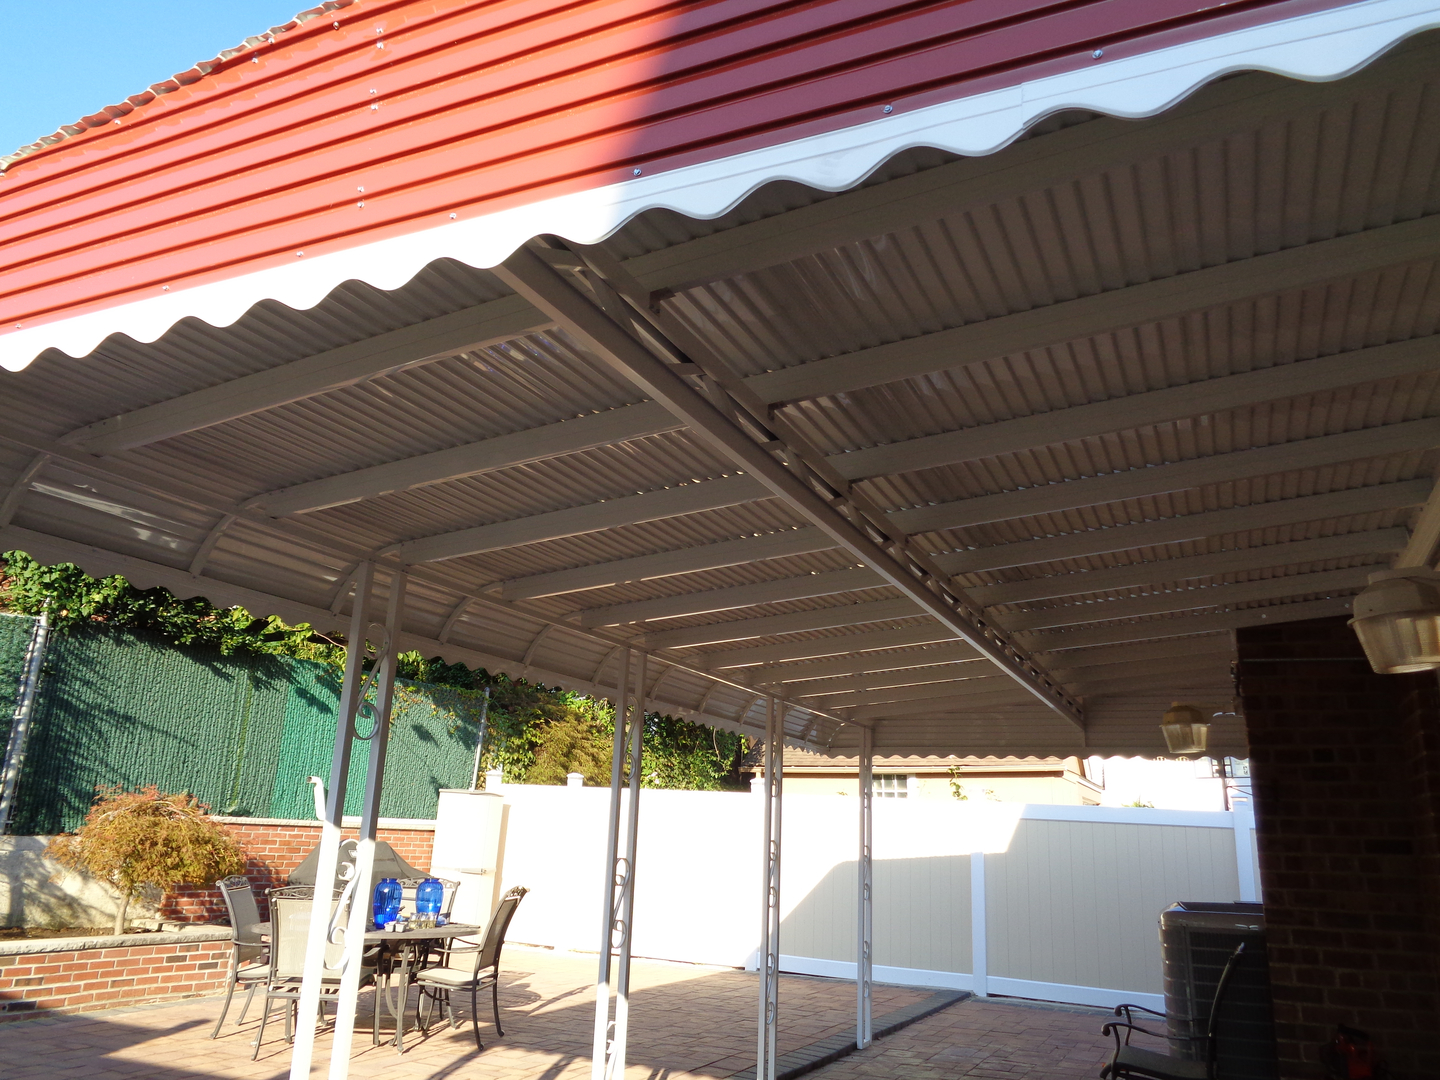 inspirational business for hoffman brooklyn a awnings small awning of